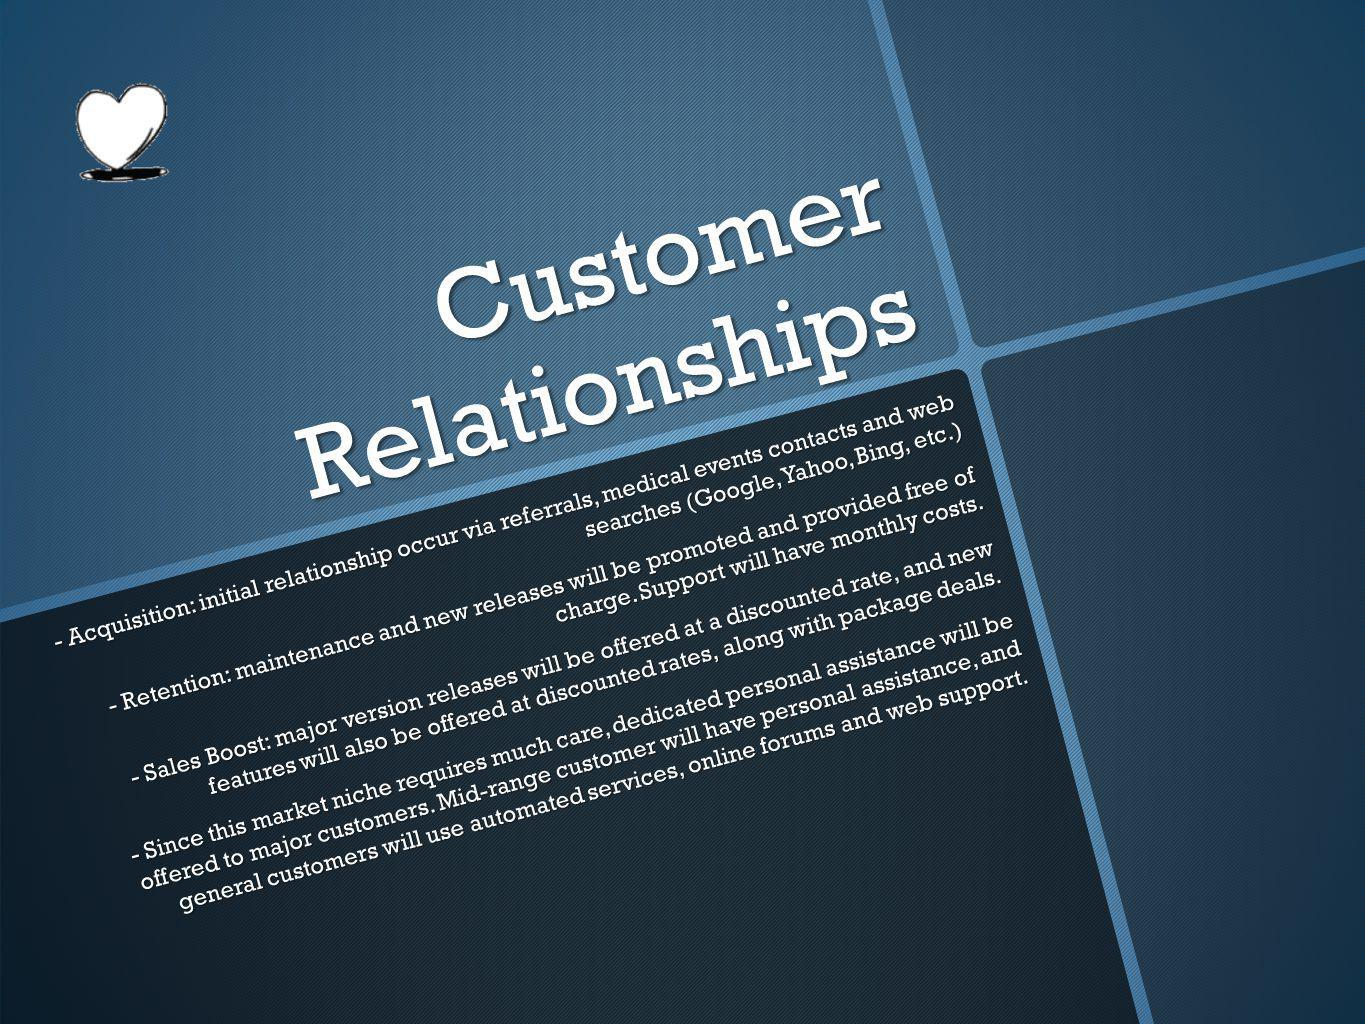 Customer Relationships - Acquisition: initial relationship occur via referrals, medical events contacts and web searches (Google, Yahoo, Bing, etc.) - Retention: maintenance and new releases will be promoted and provided free of charge.